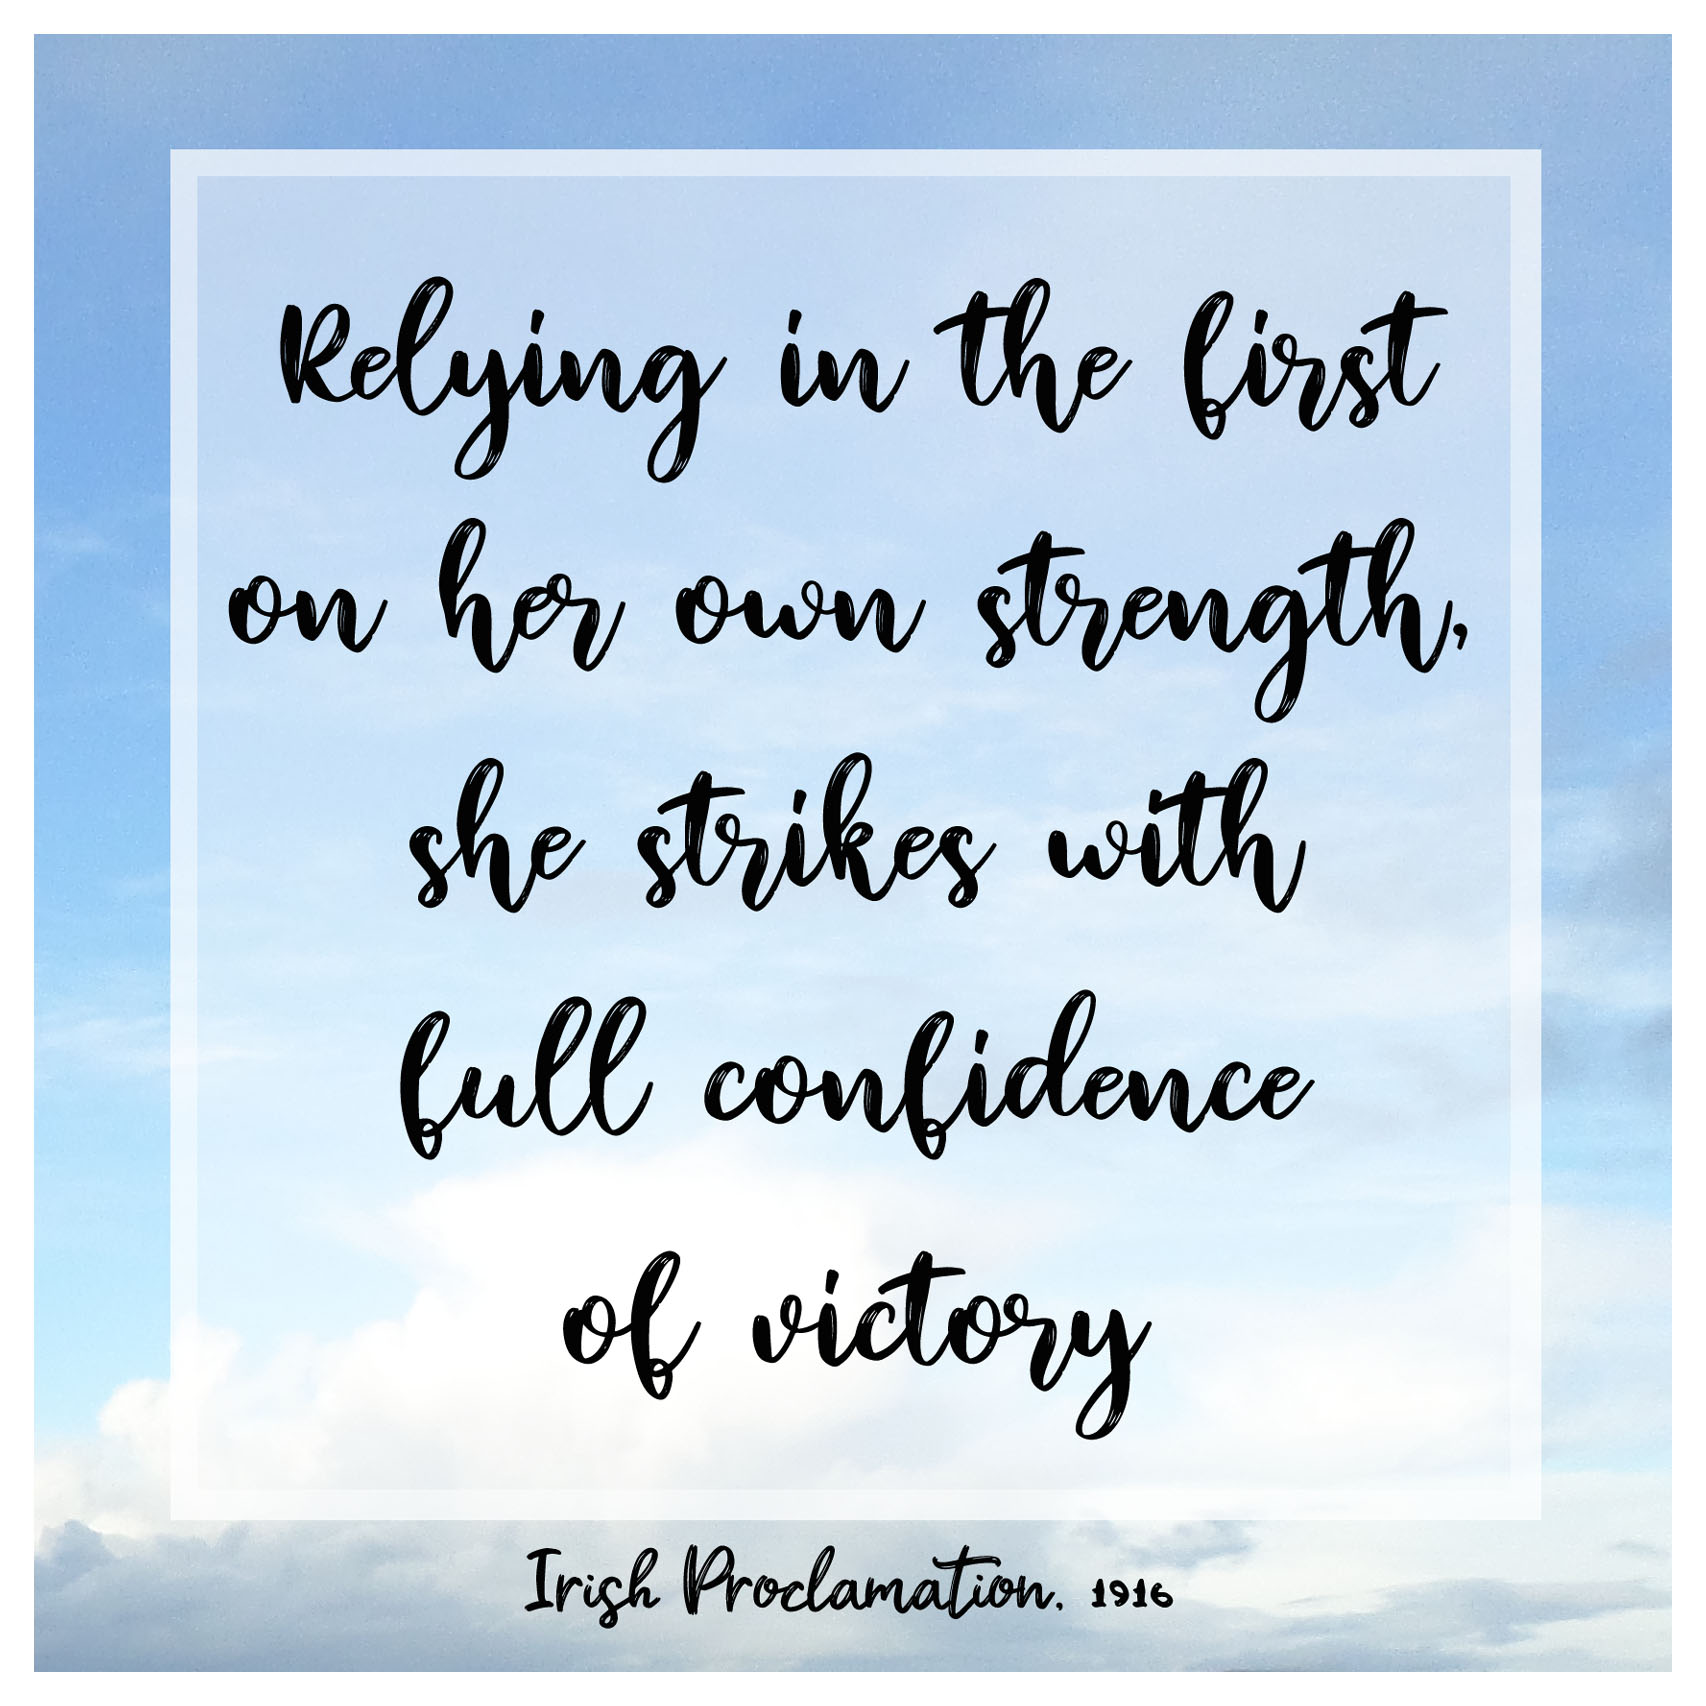 Relying in the first on her own strength, she strikes with full confidence of victory